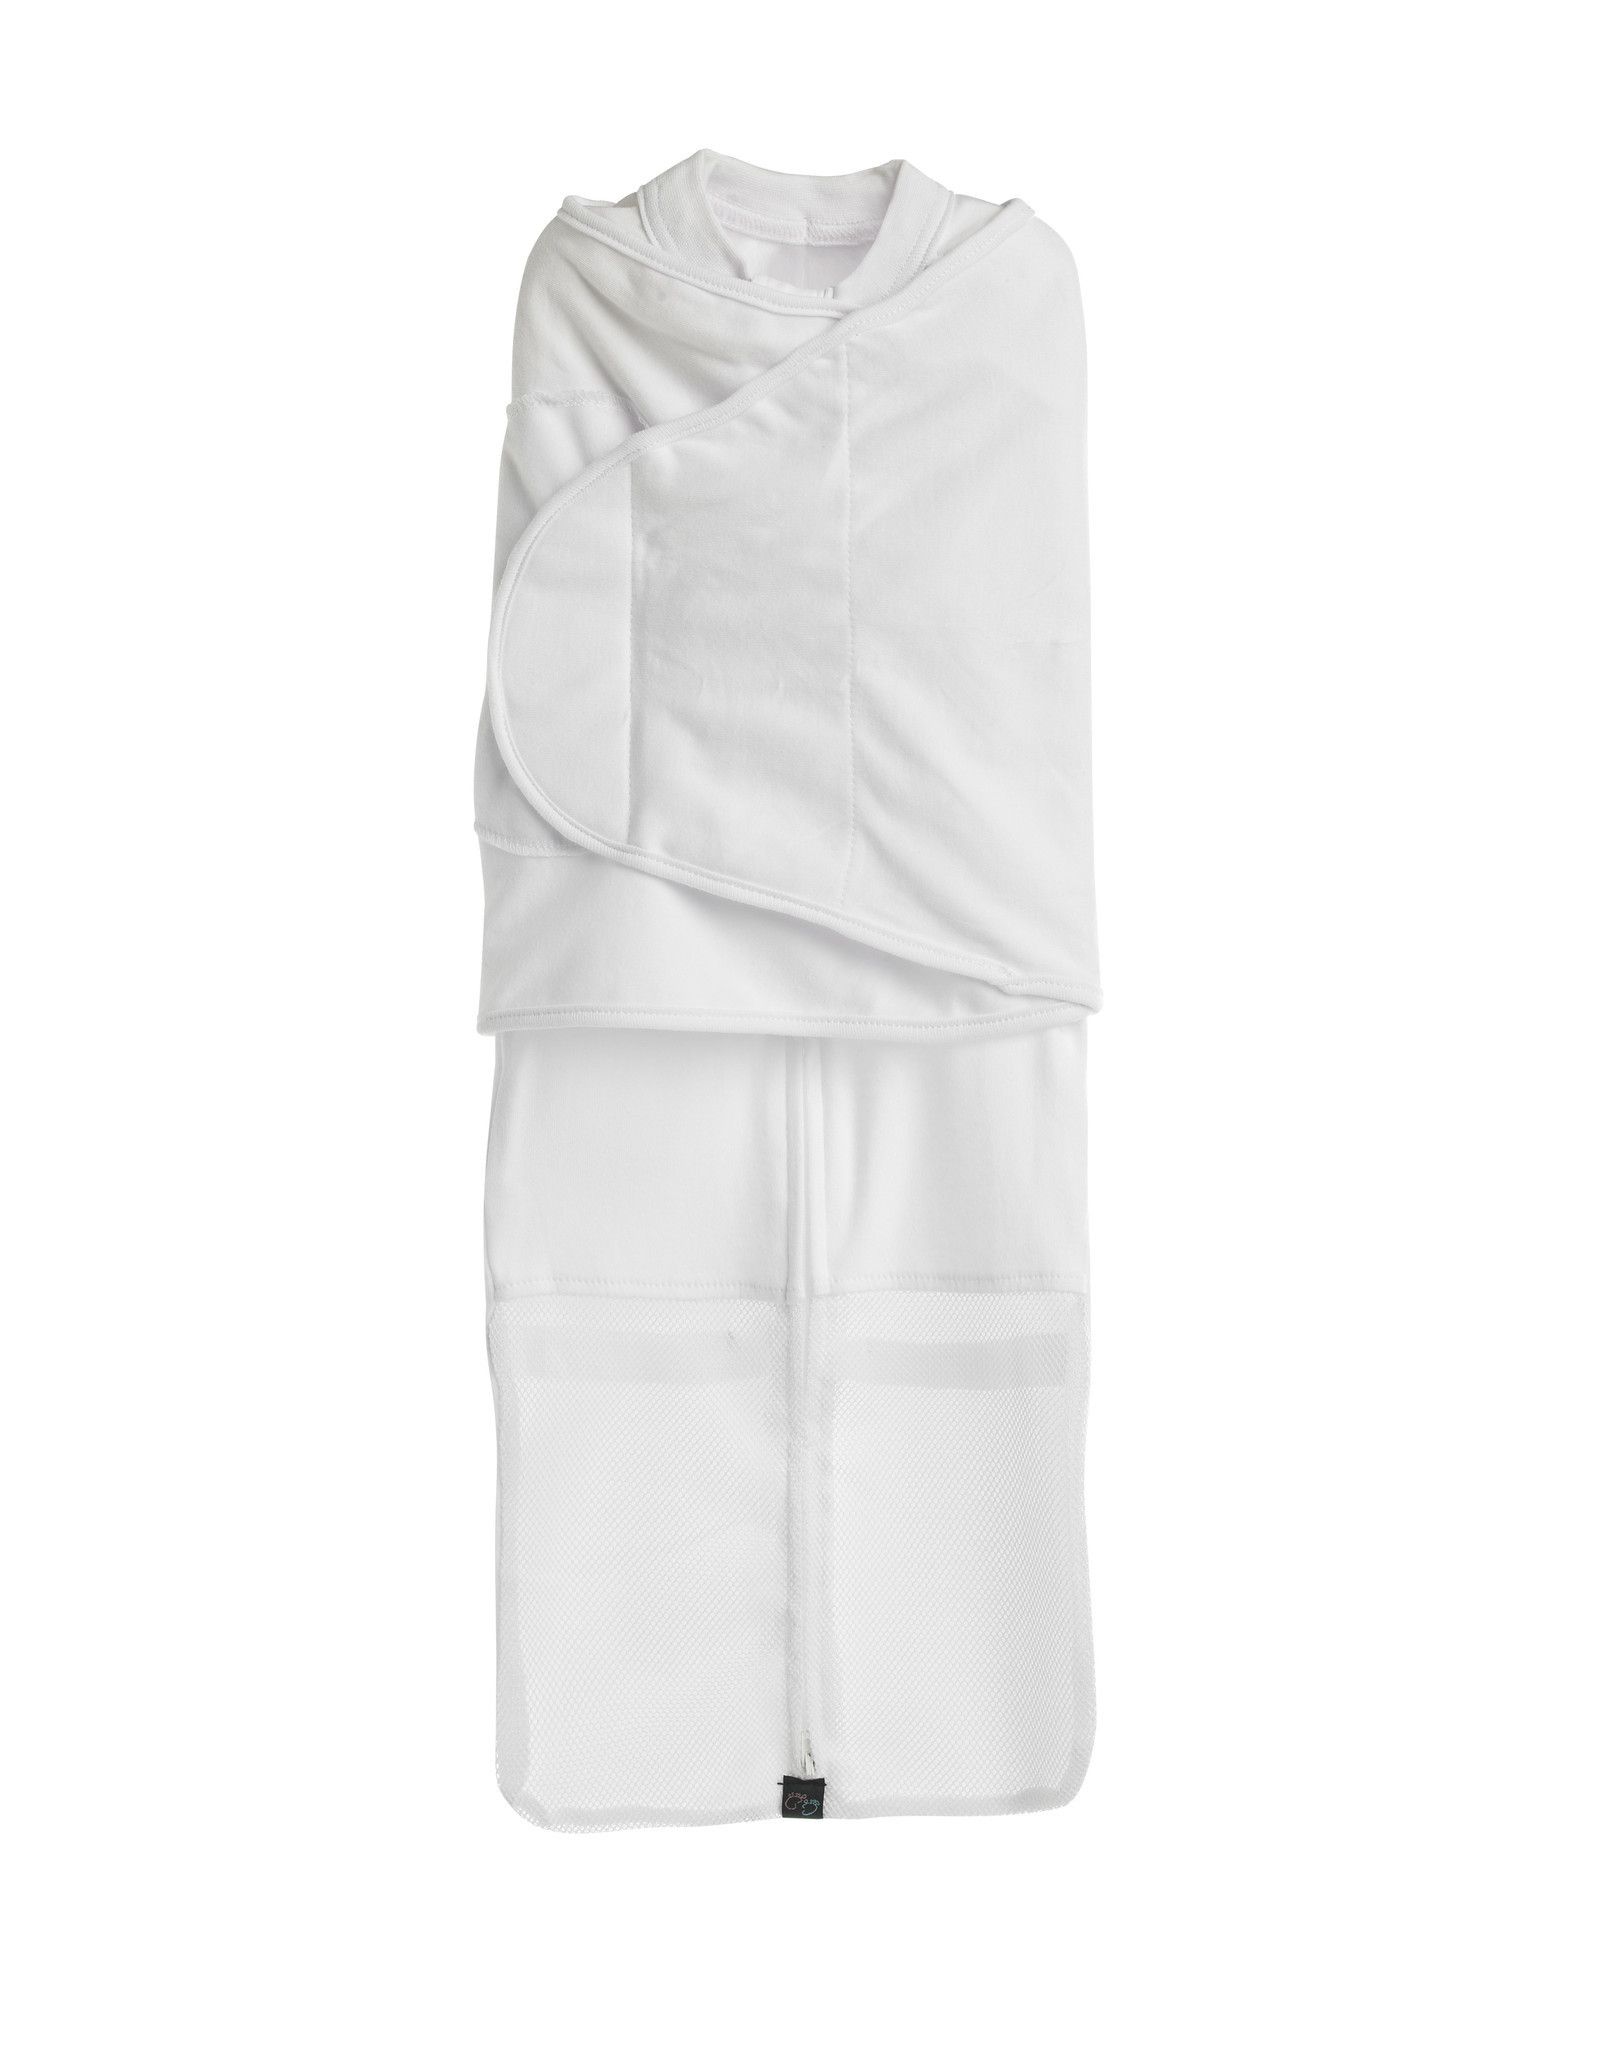 Mum2Mum Mum2Mum Summer Dream Swaddle Small White